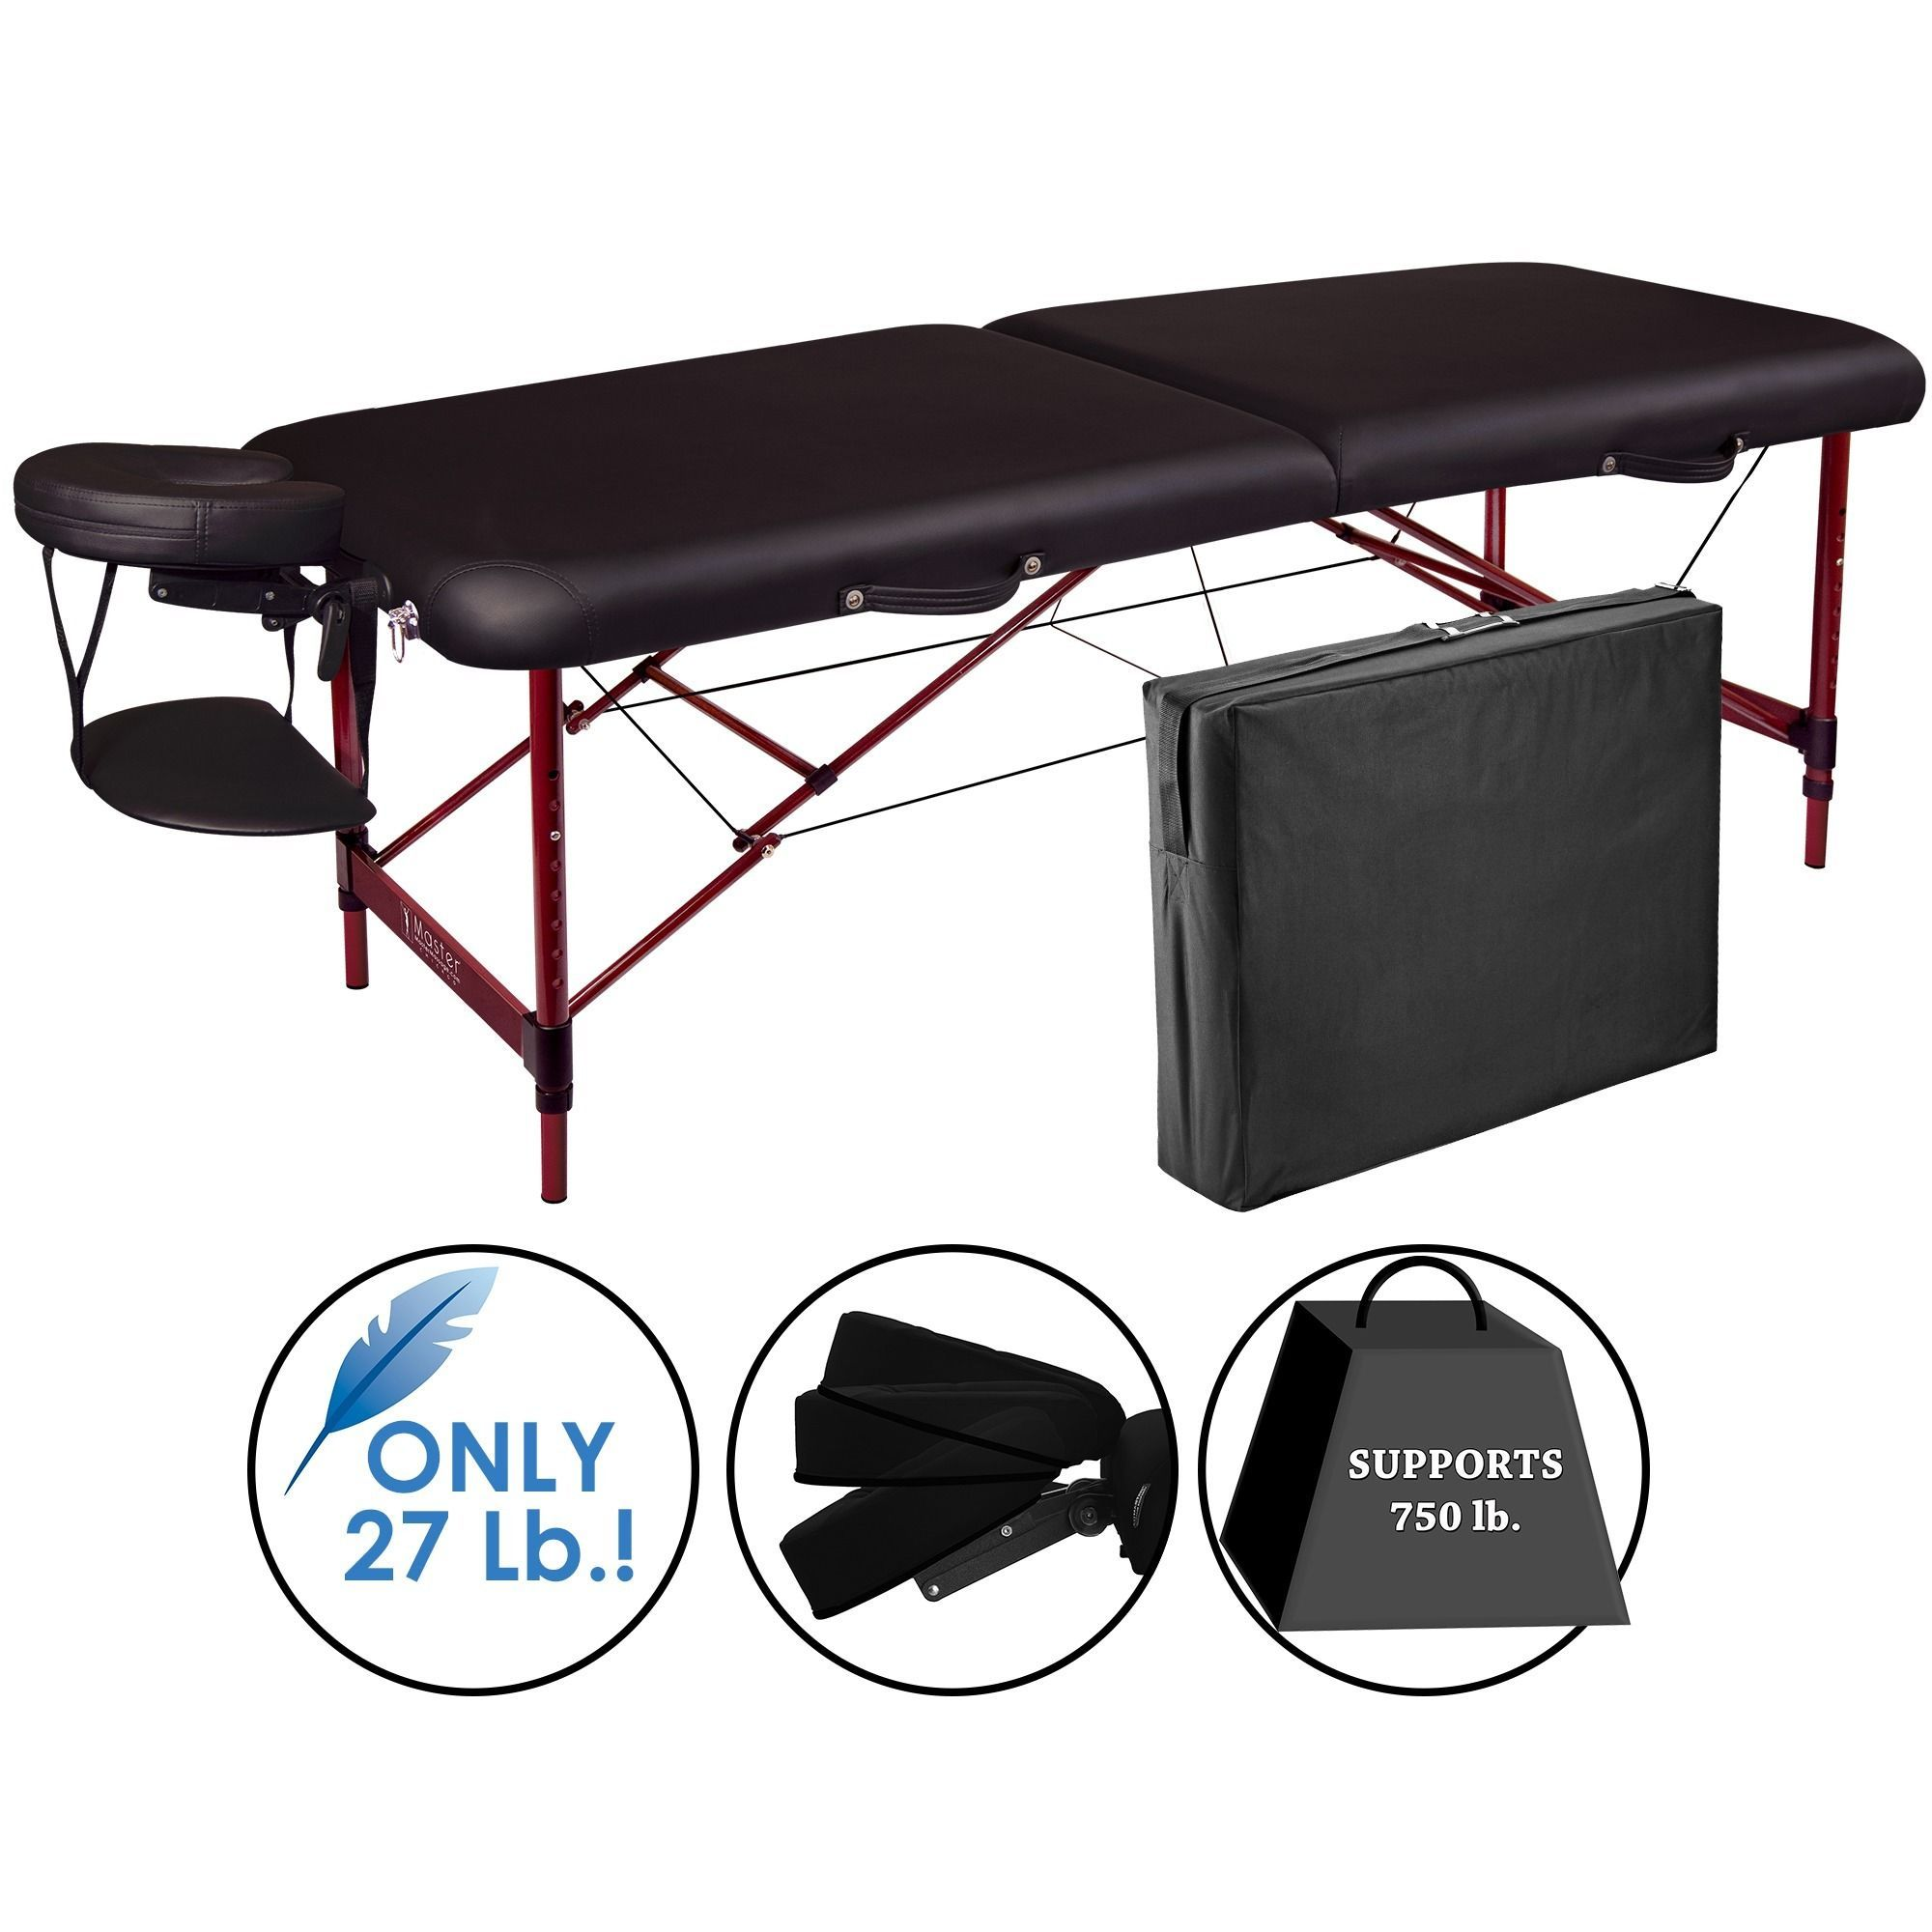 Nuru Chair Master 28 Inch Lightweight Zephyr Portable Massage Table